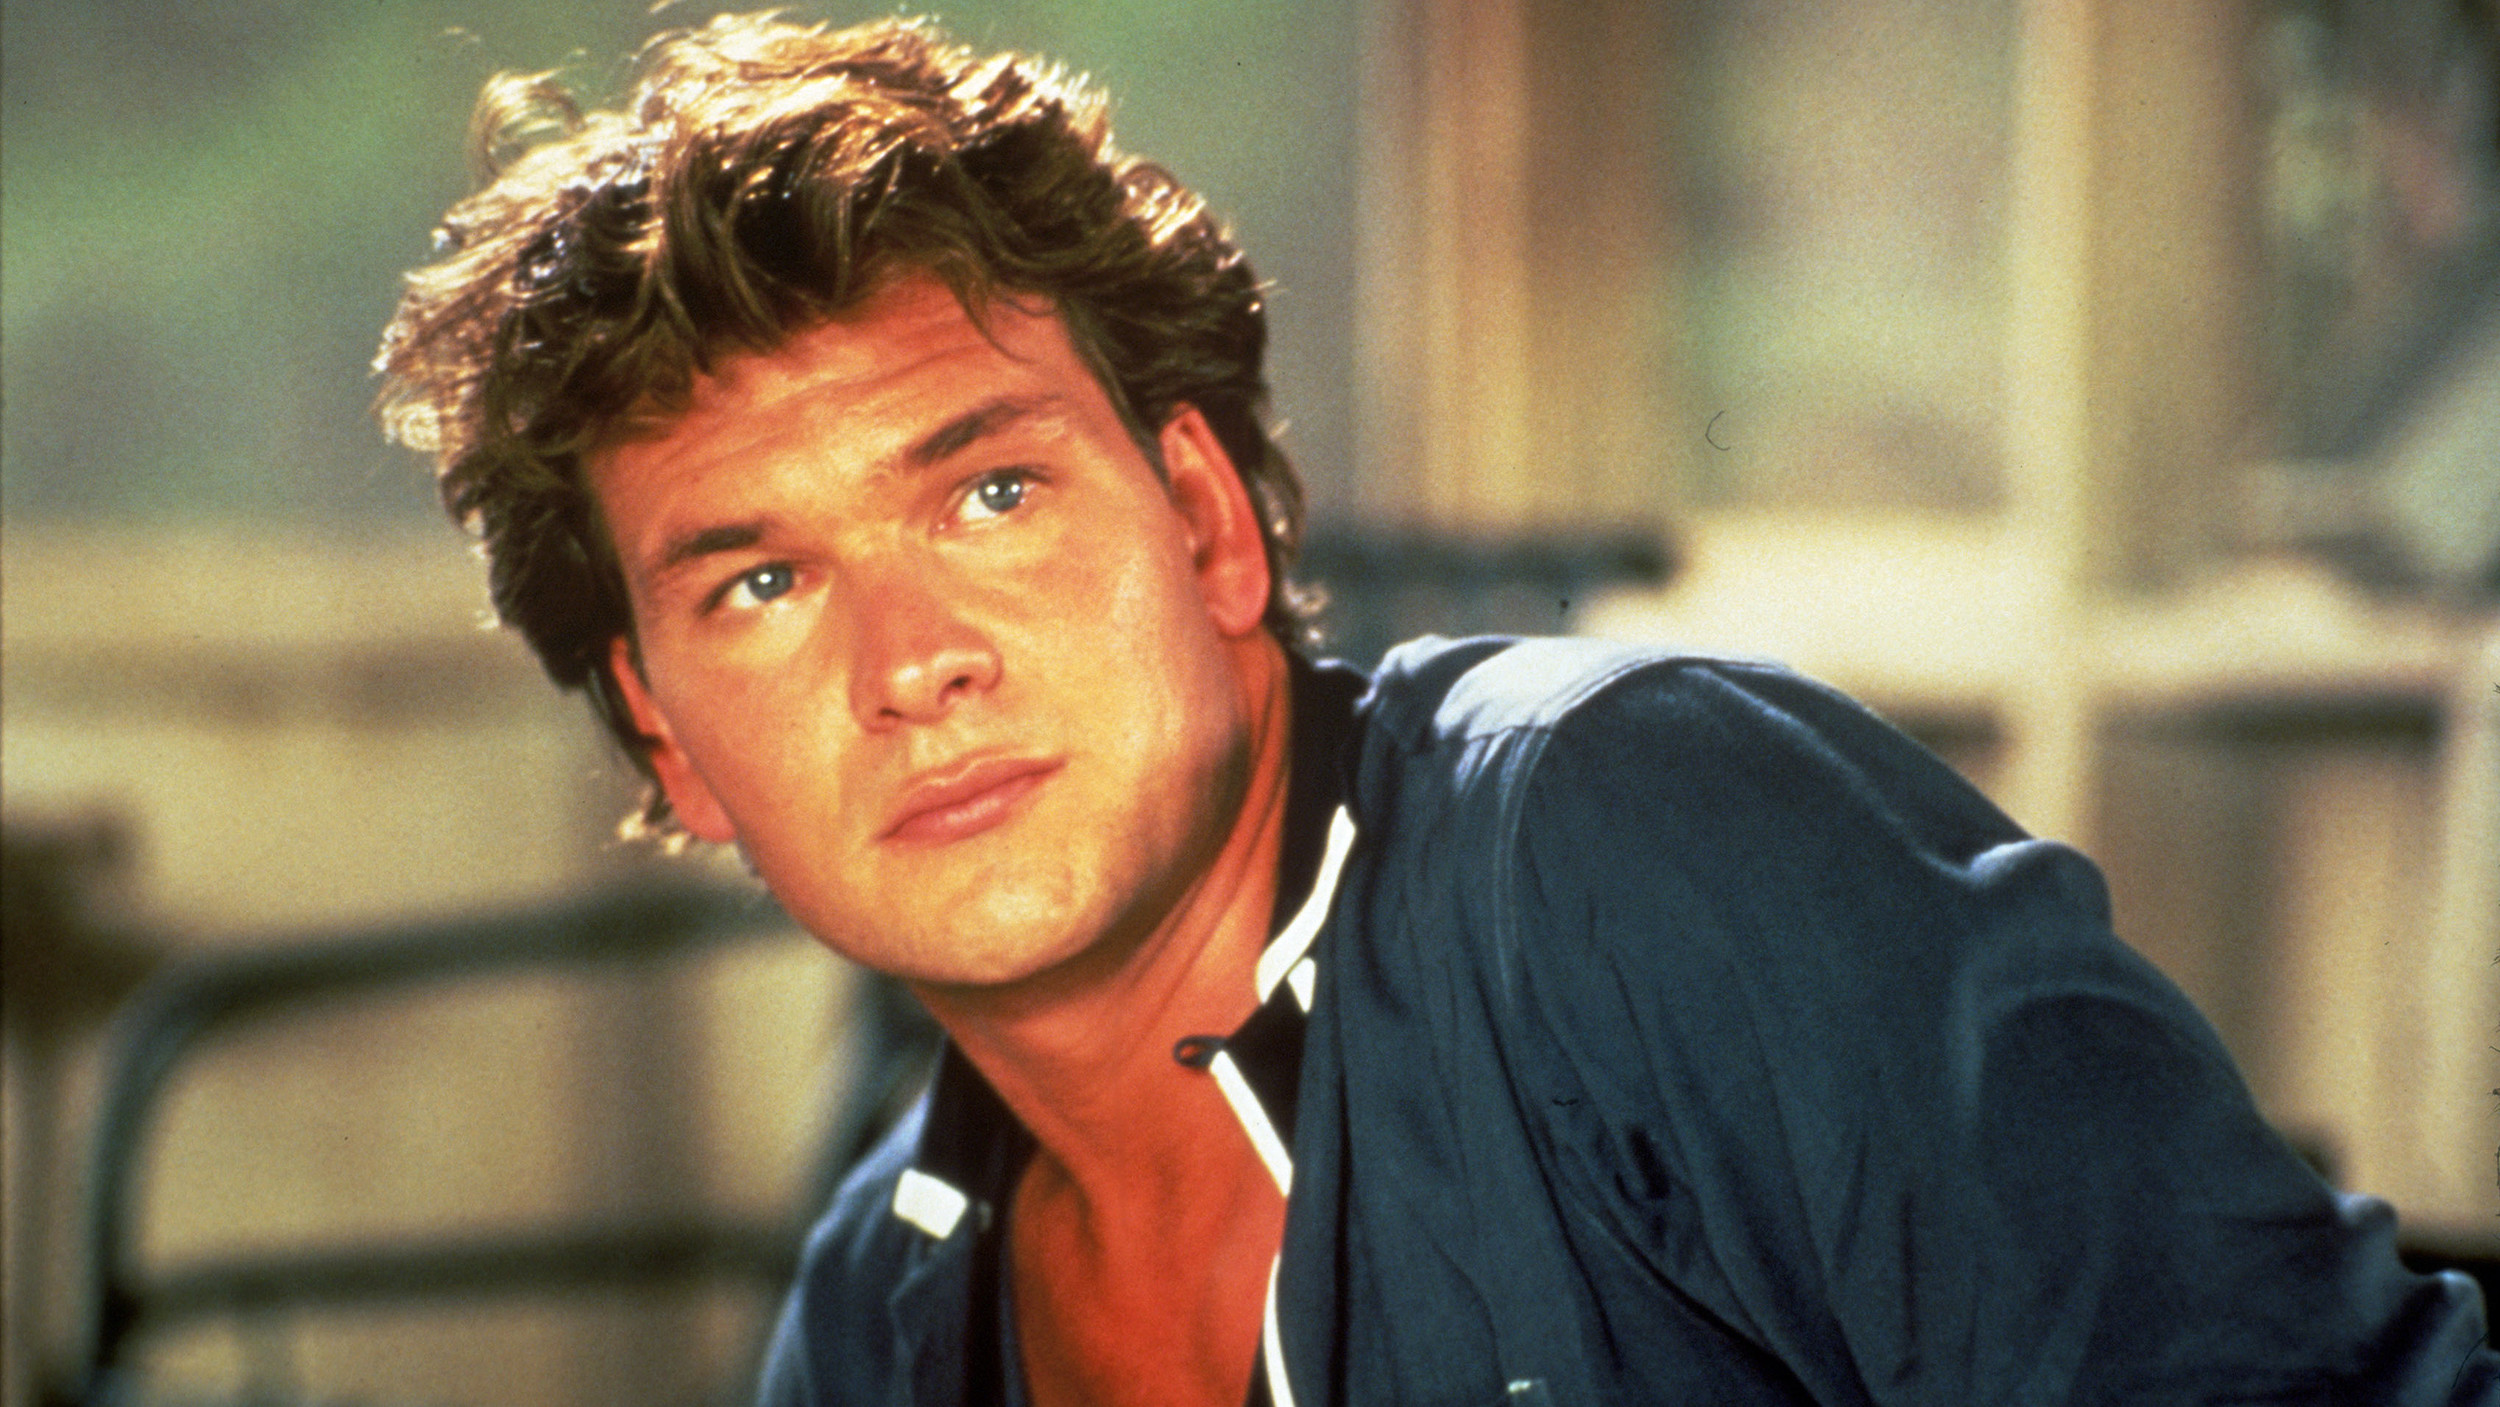 Res: 2500x1407, 'Dirty Dancing' TV remake casts Colt Prattes in Patrick Swayze's iconic  role - TODAY.com